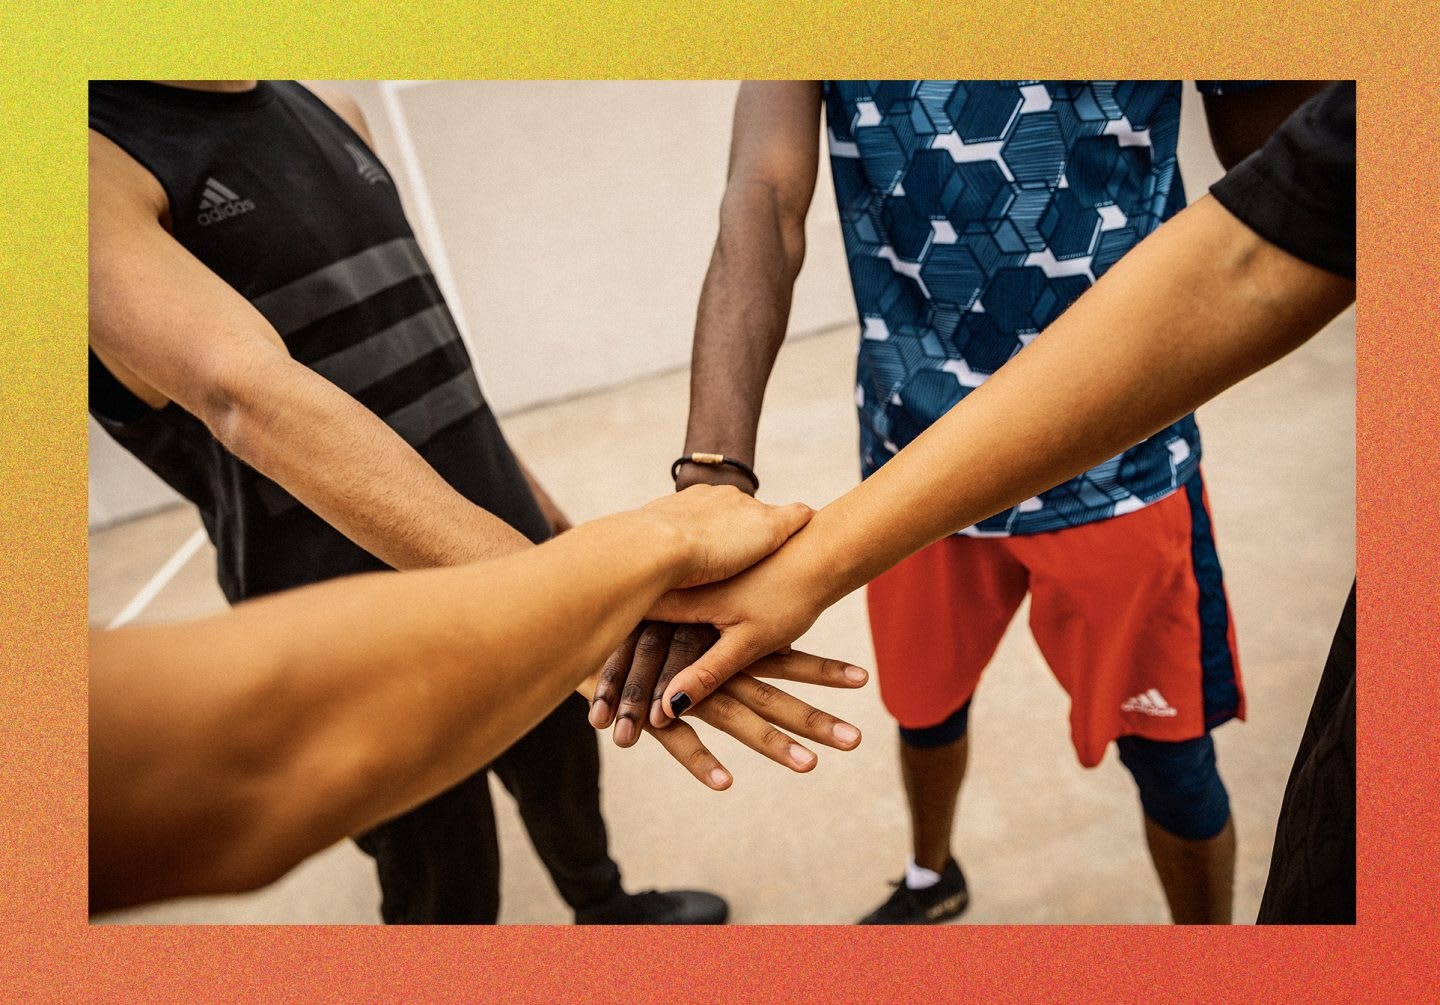 Group of people joining hands together in a circle, teamwork, team, inclusion, group, diversity, adidas